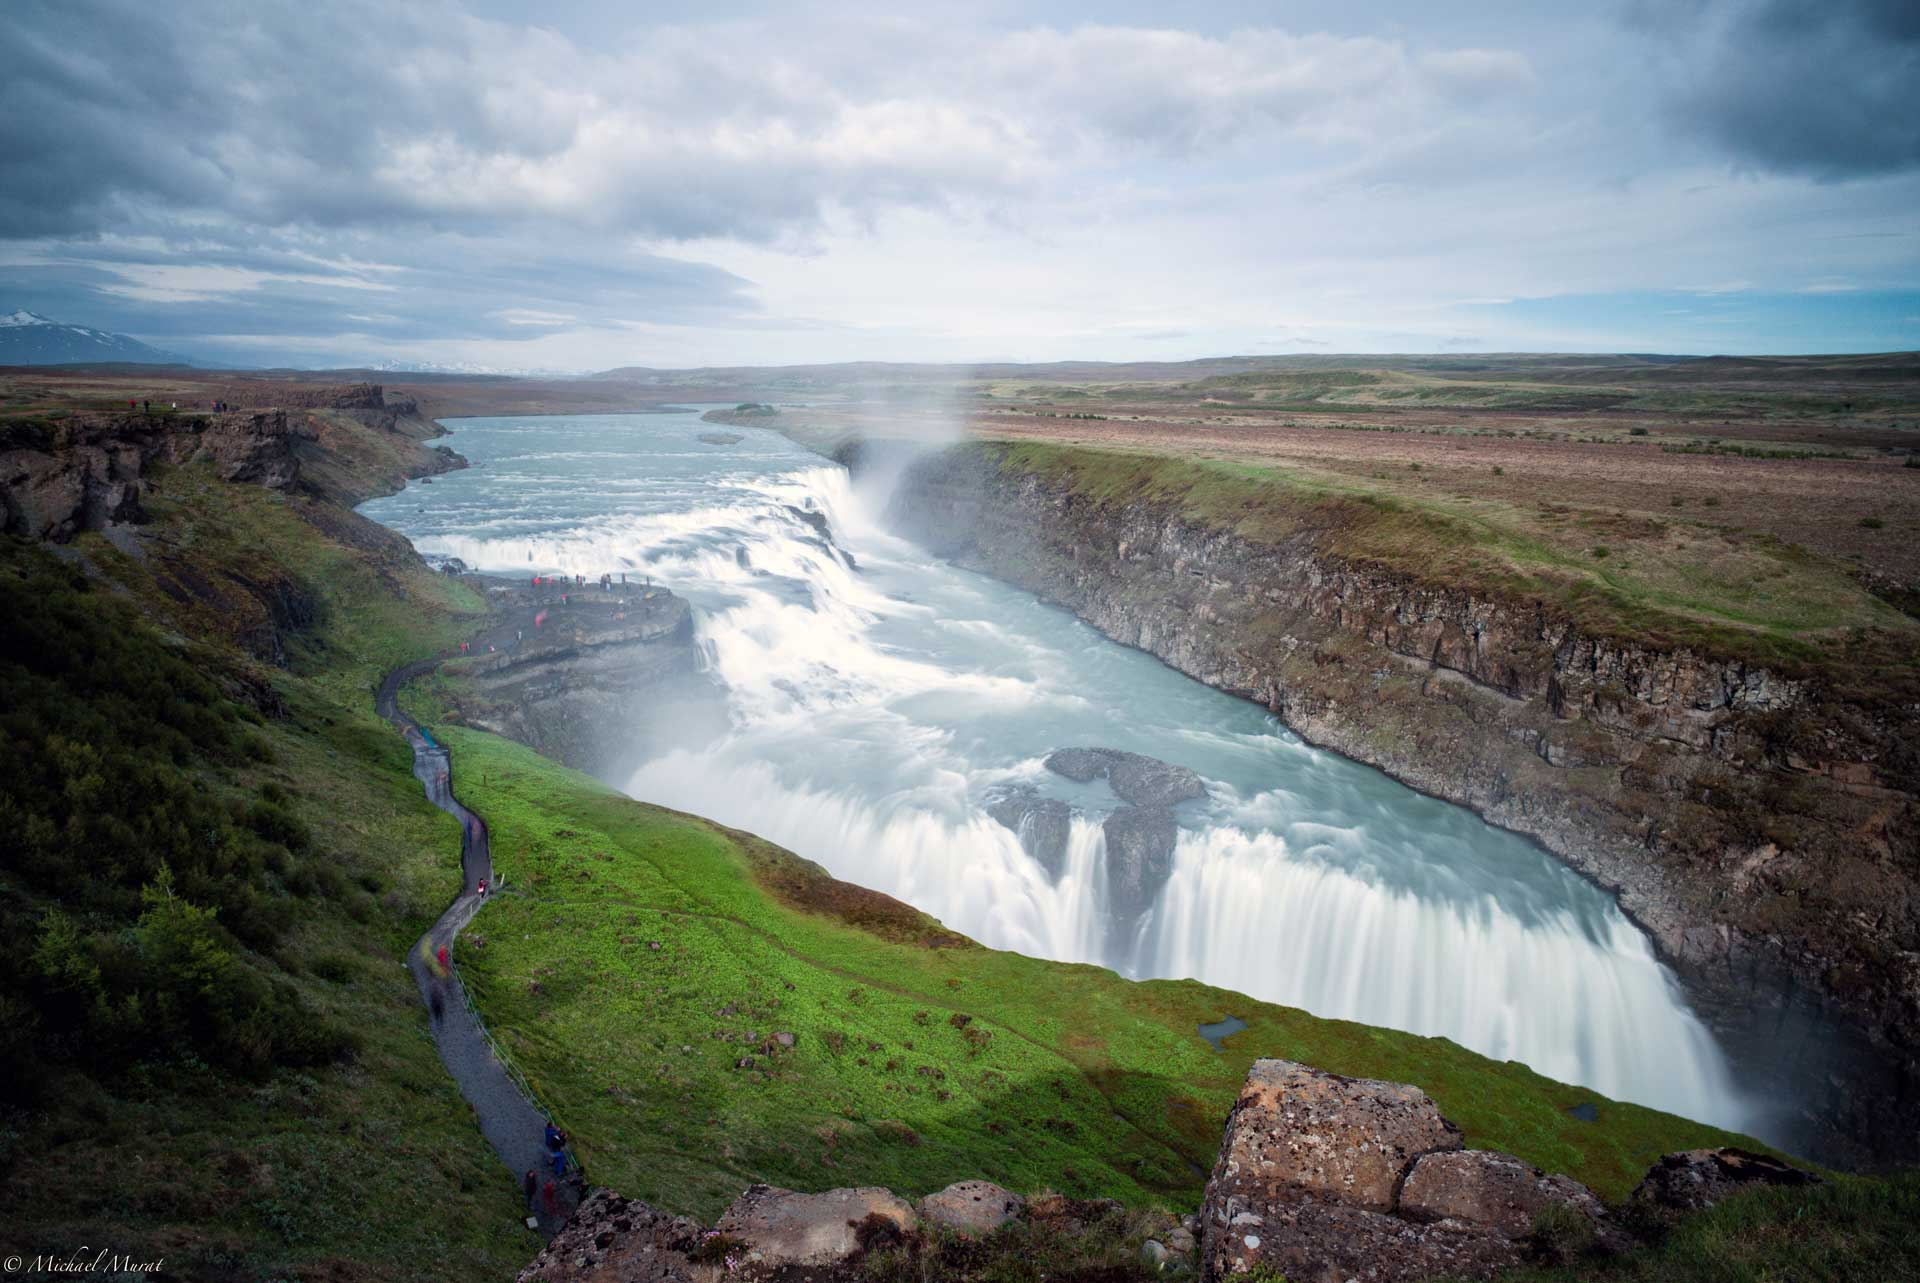 Gullfoss waterfall in the Golden Circle area of South Iceland